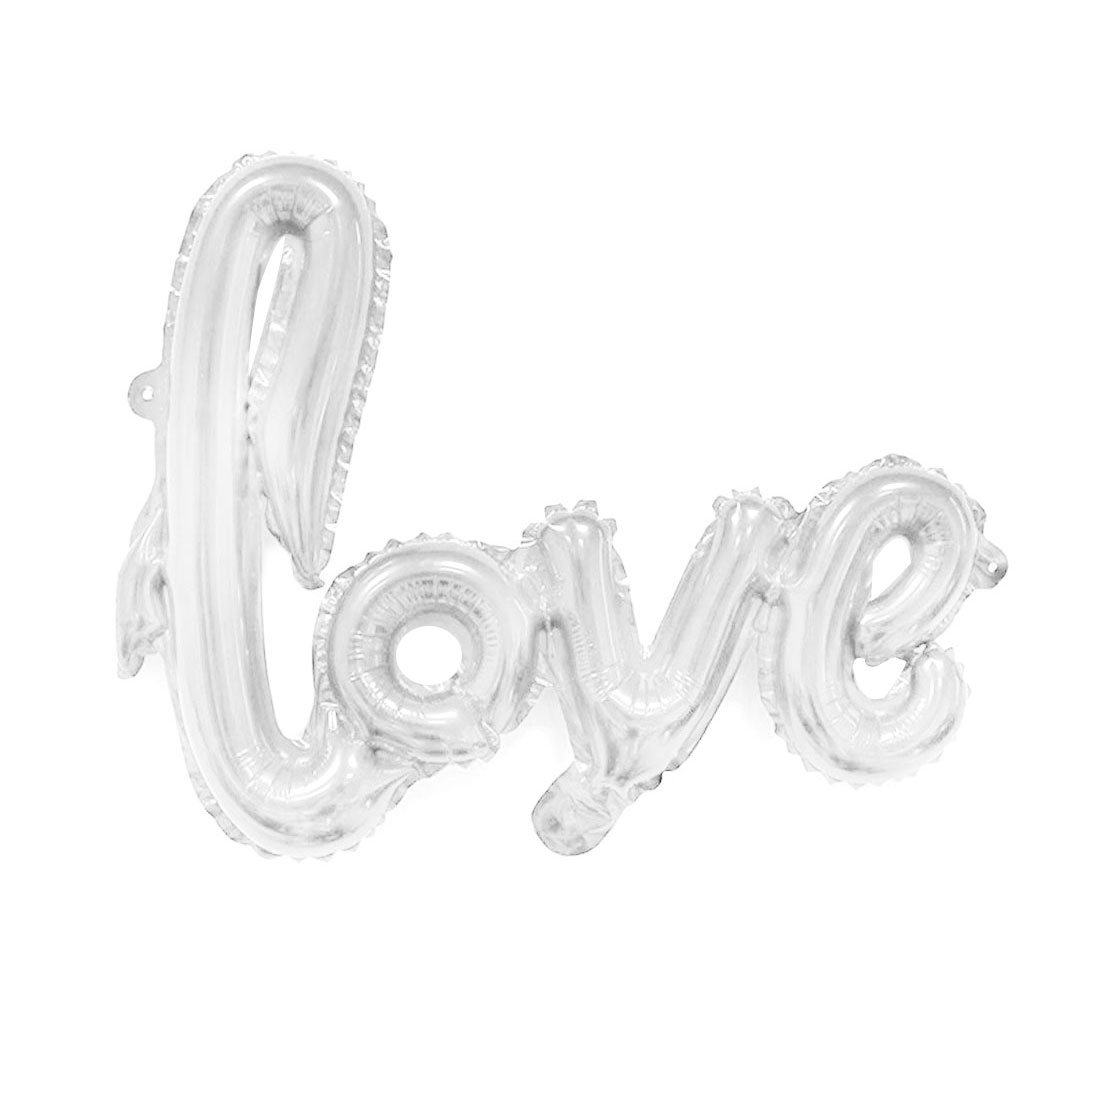 Home Foil LOVE Shaped Inflation Balloon Wedding Party Celebration Decor Silver Tone 30""